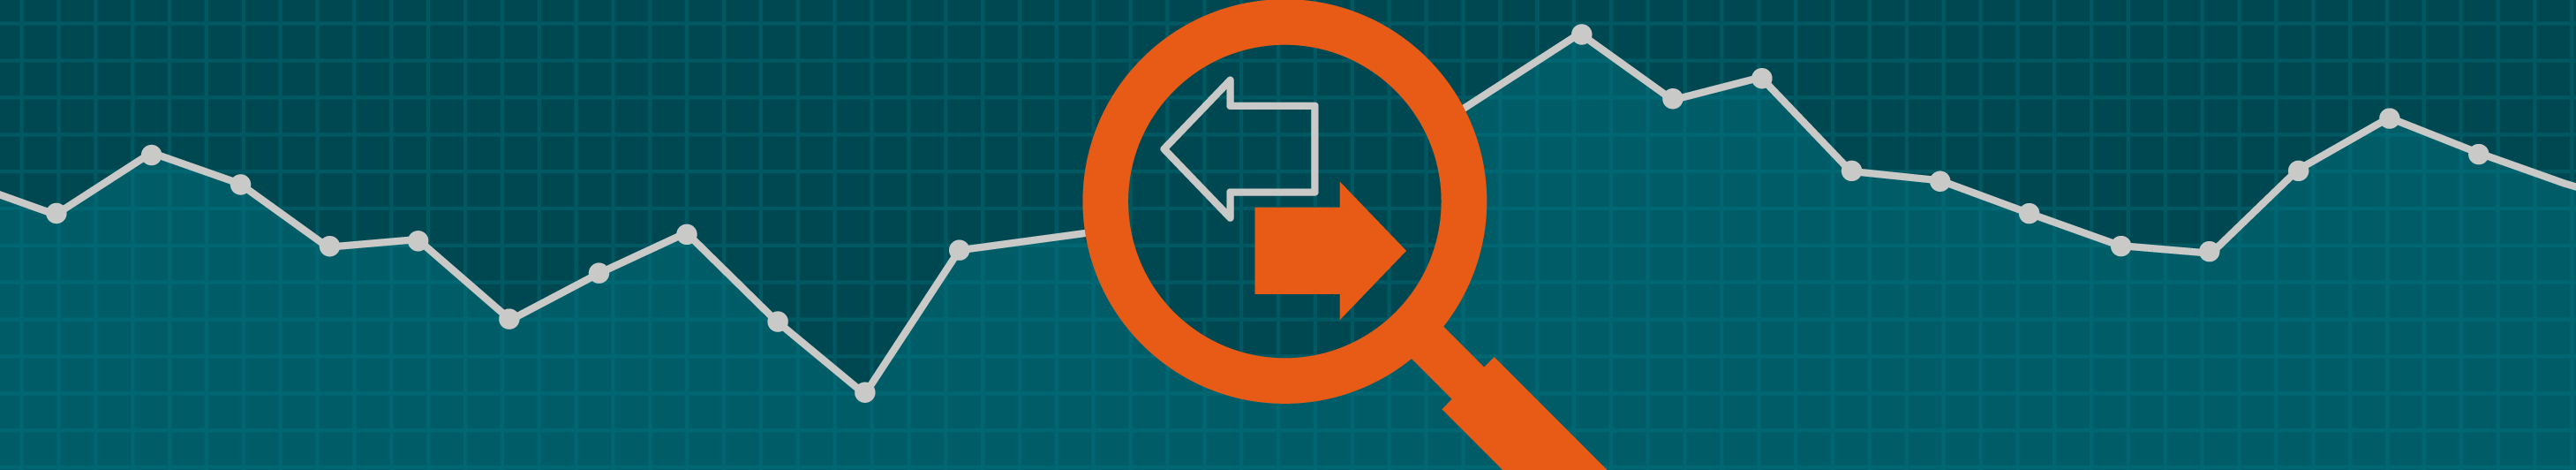 magnifying glass graphic with a teal chart background